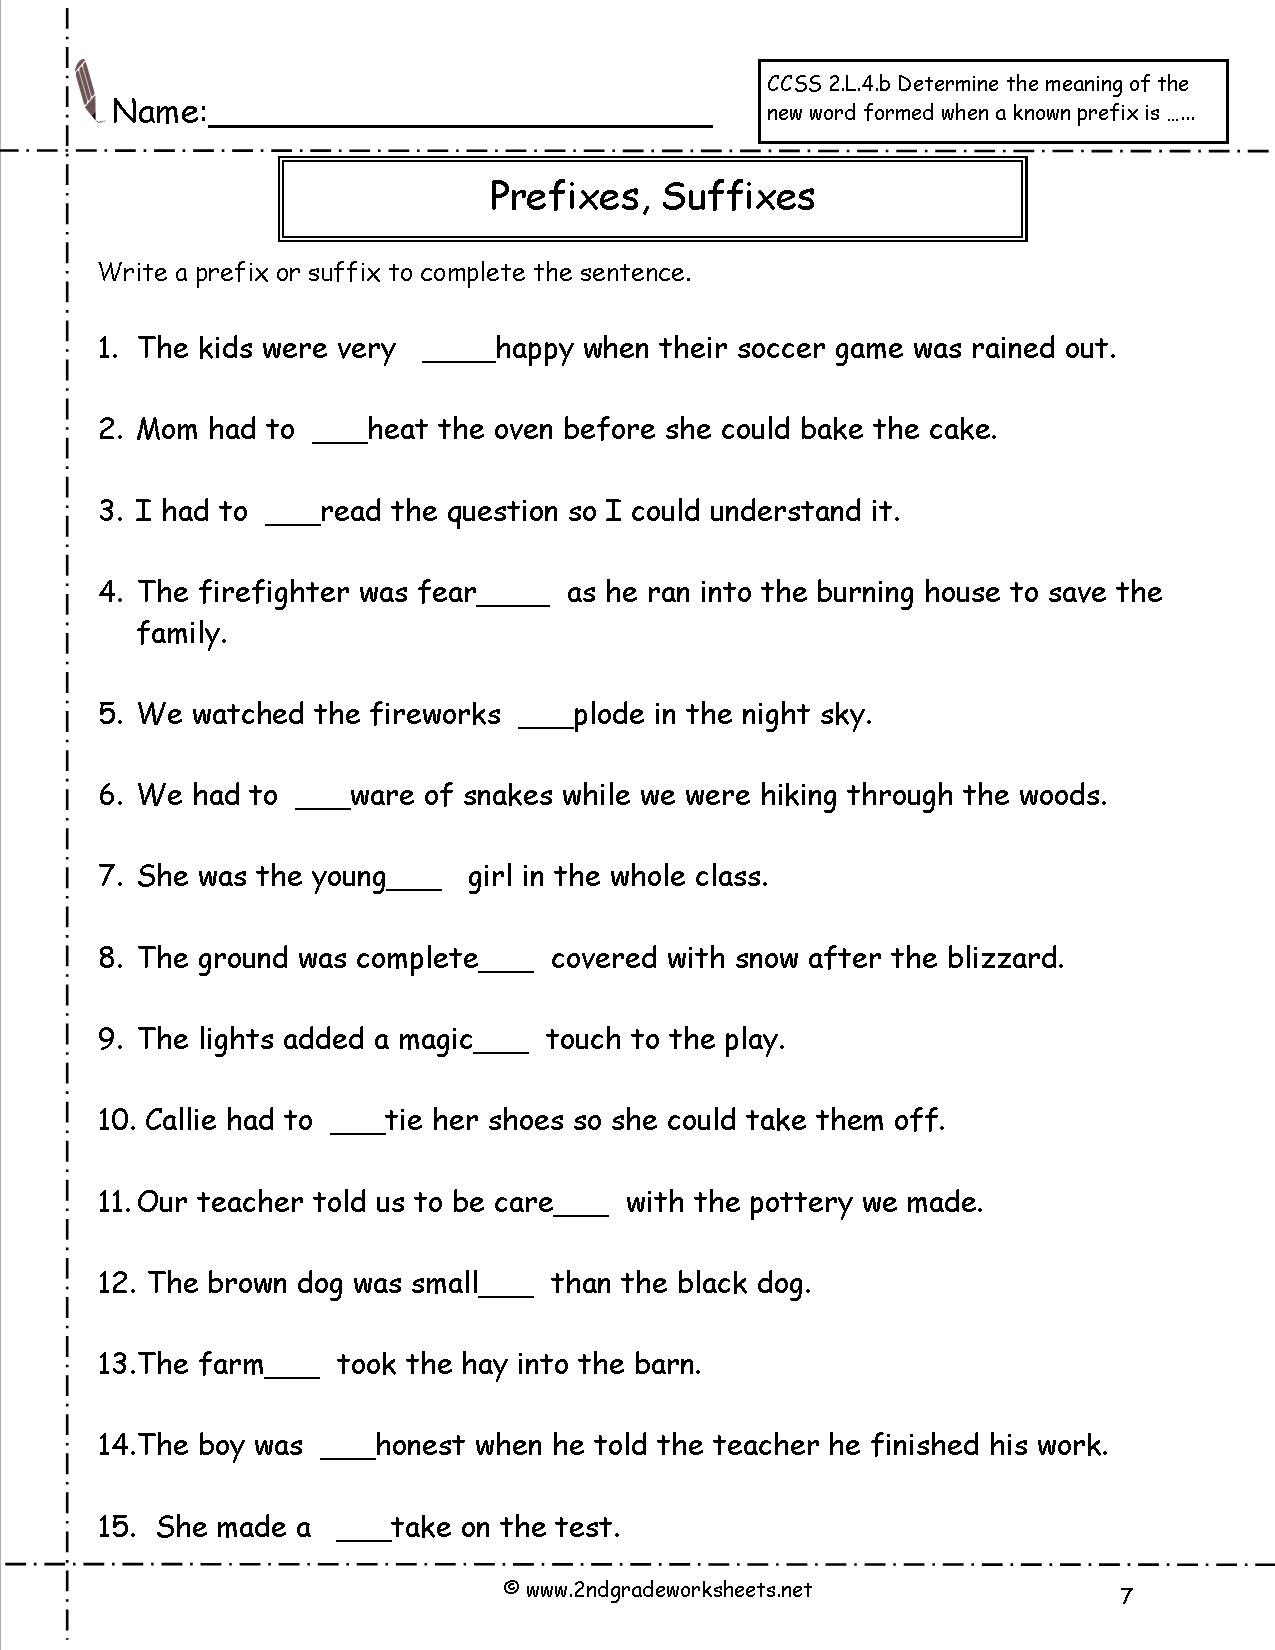 Worksheet  2nd Grade Prefixes And Suffixes Worksheets  Second